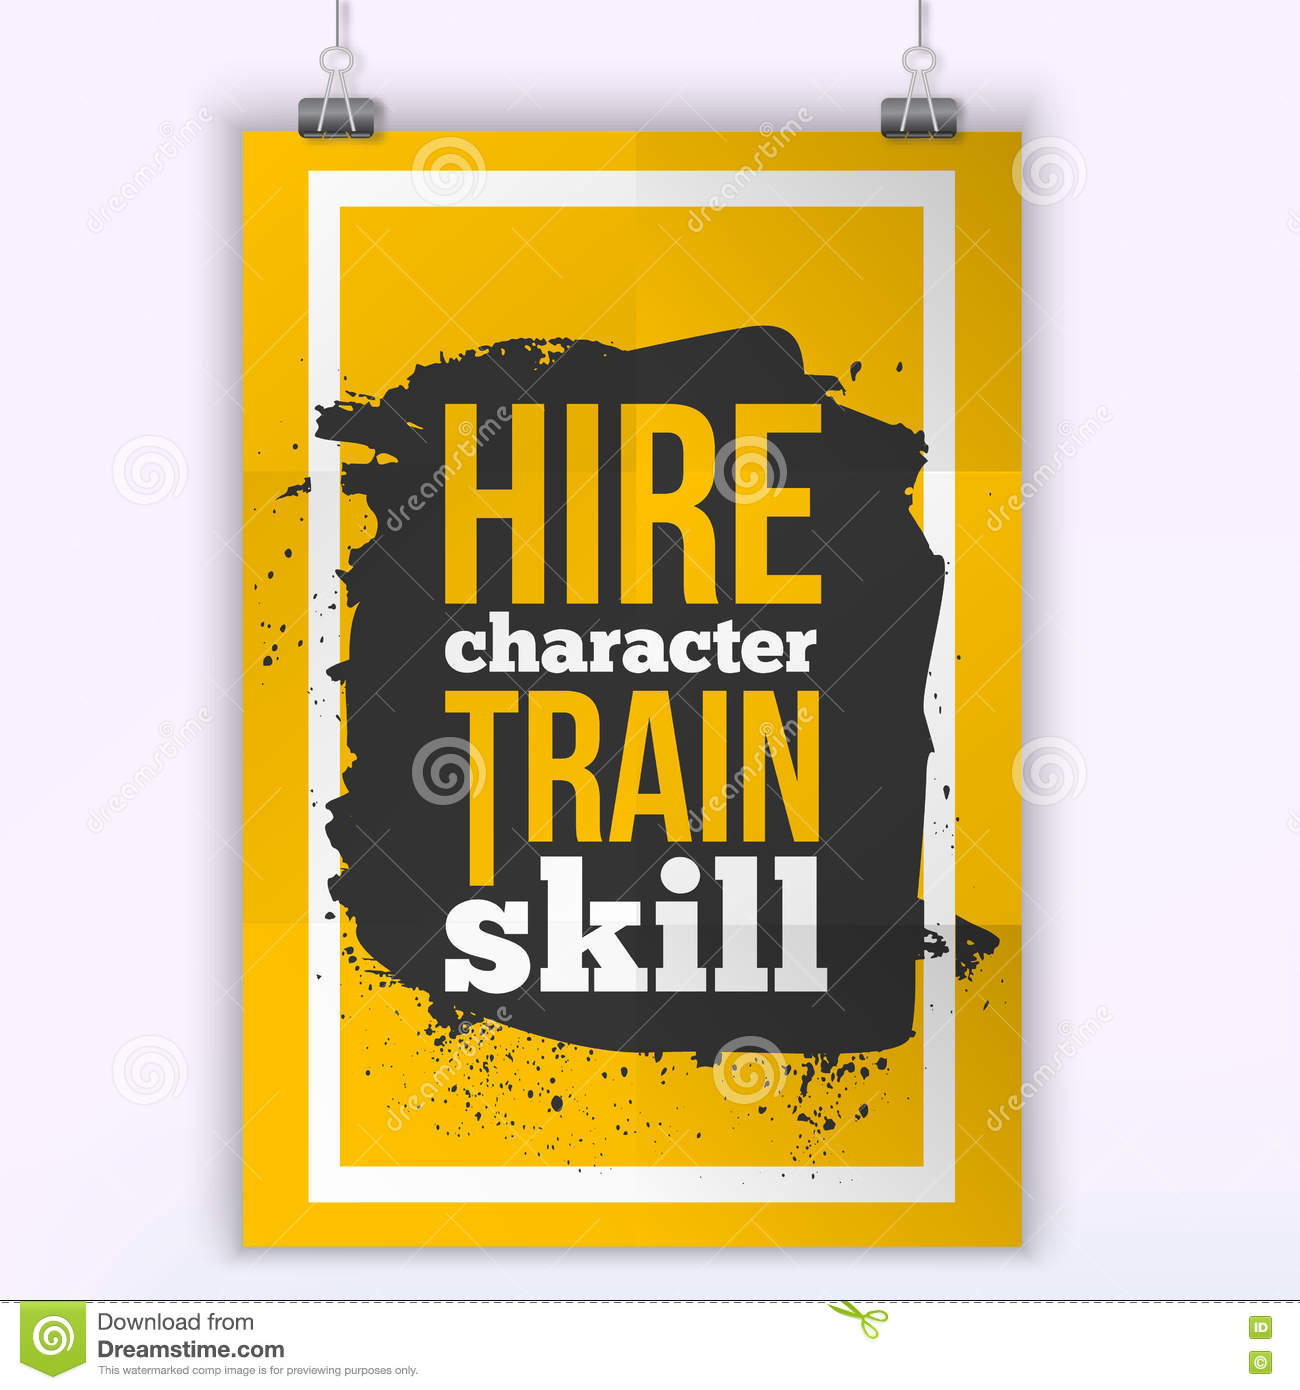 hire character train skill quote for wall art prints mock up